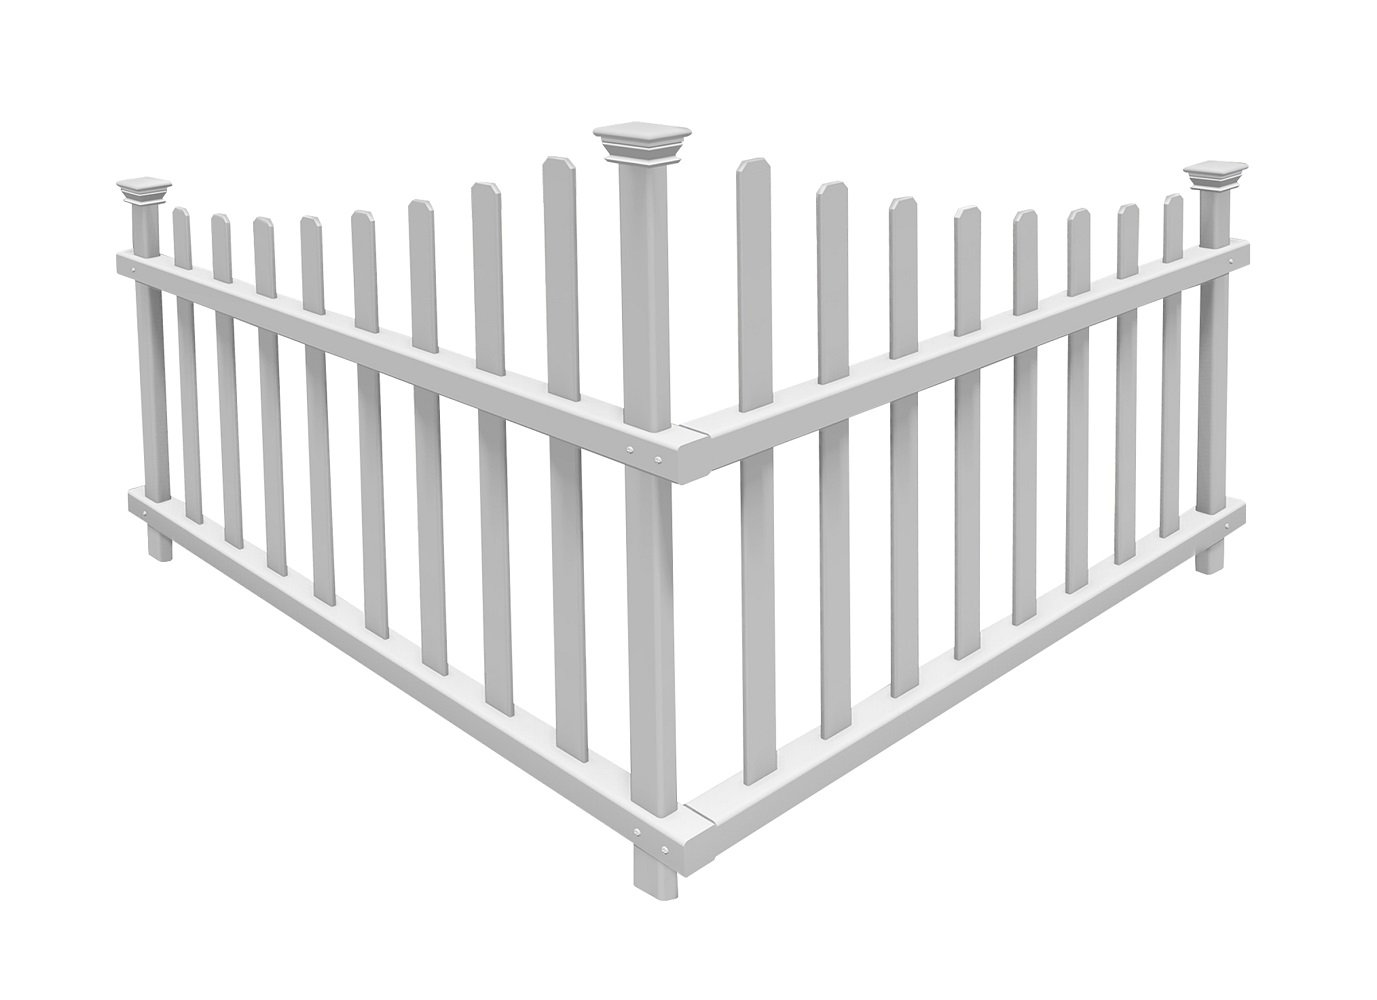 Zippity Outdoor Products ZP19007 No-Dig Vinyl Corner Picket Unassembled Accent Fence, 42'' x 30'', White